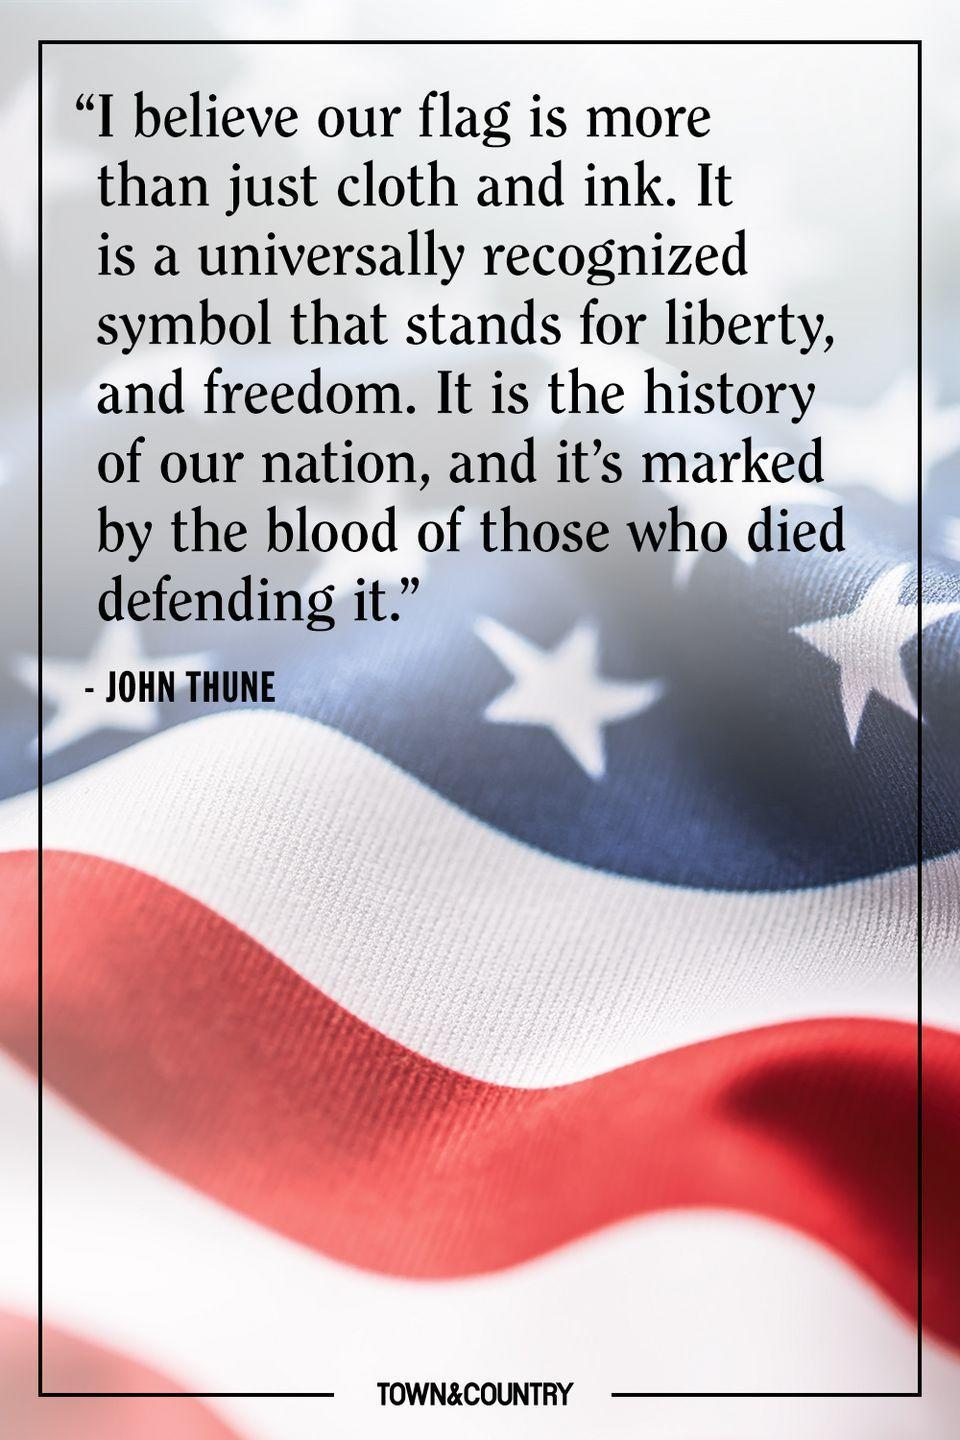 "<p>""I believe our flag is more than just cloth and ink. It is a universally recognized symbol that stands for liberty, and freedom. It is the history of our nation, and it's marked by the blood of those who died defending it."" </p><p>– John Thune </p>"